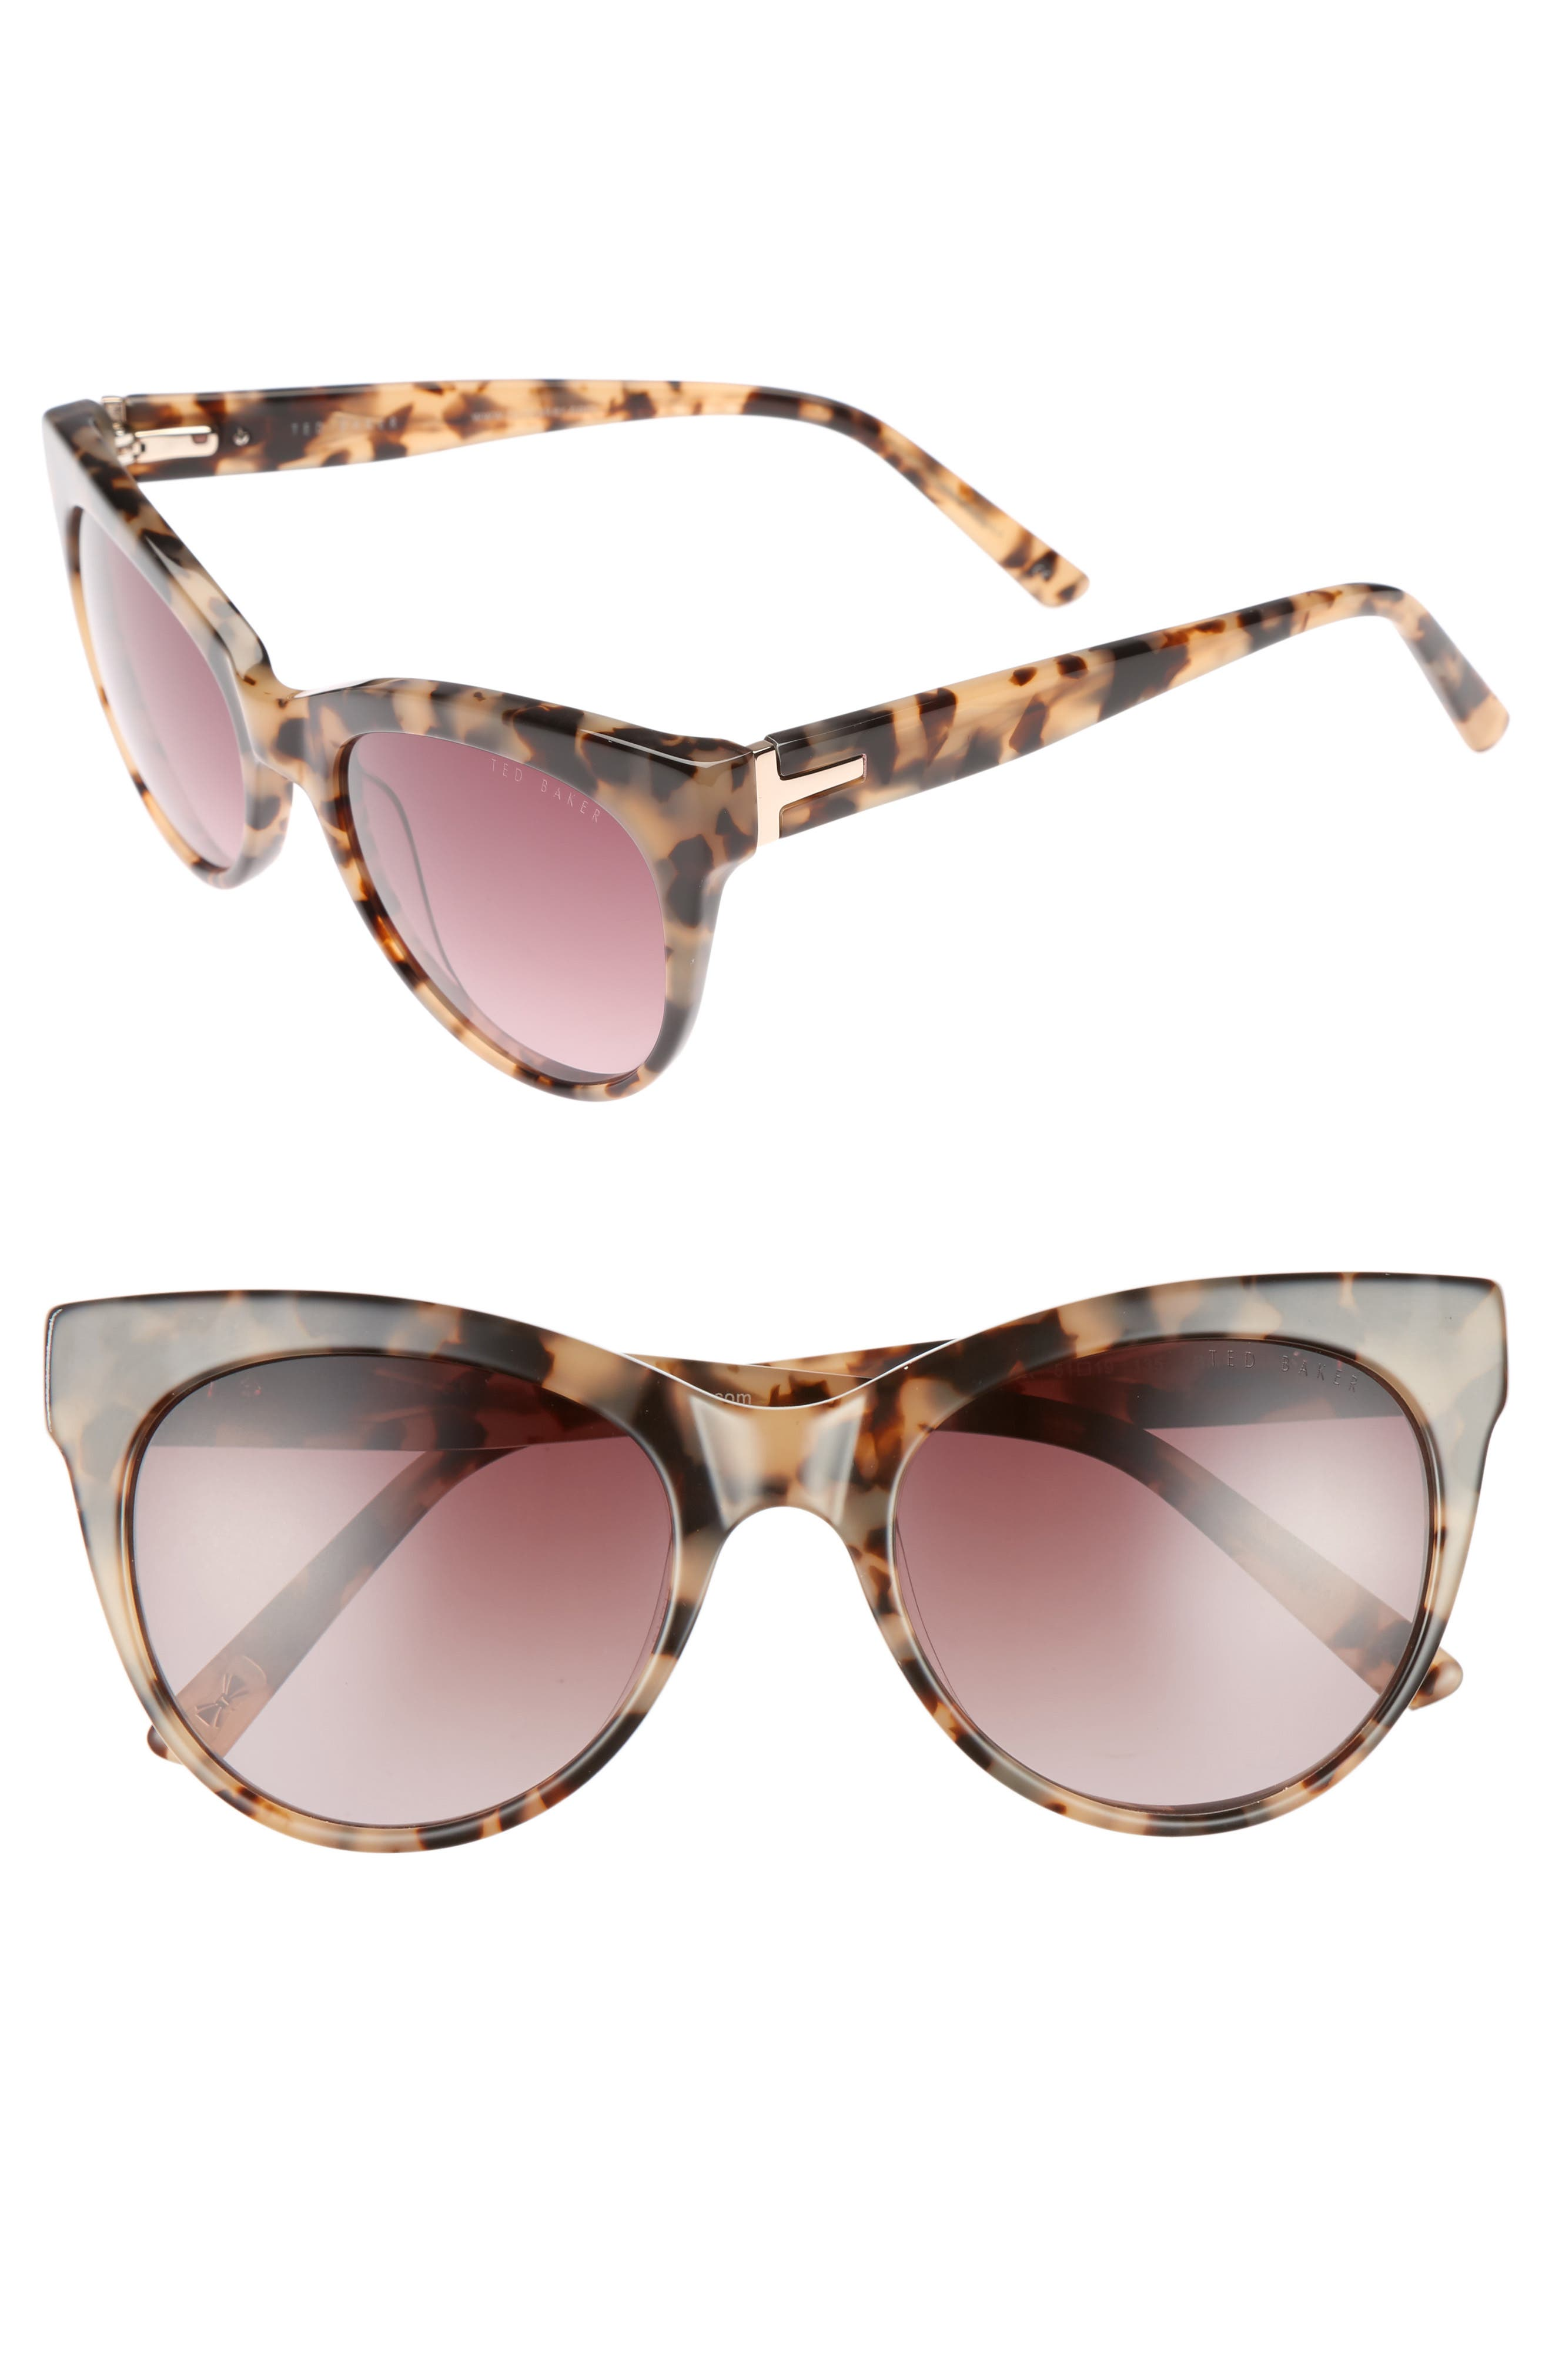 Main Image - Ted Baker London 51mm Cat Eye Sunglasses